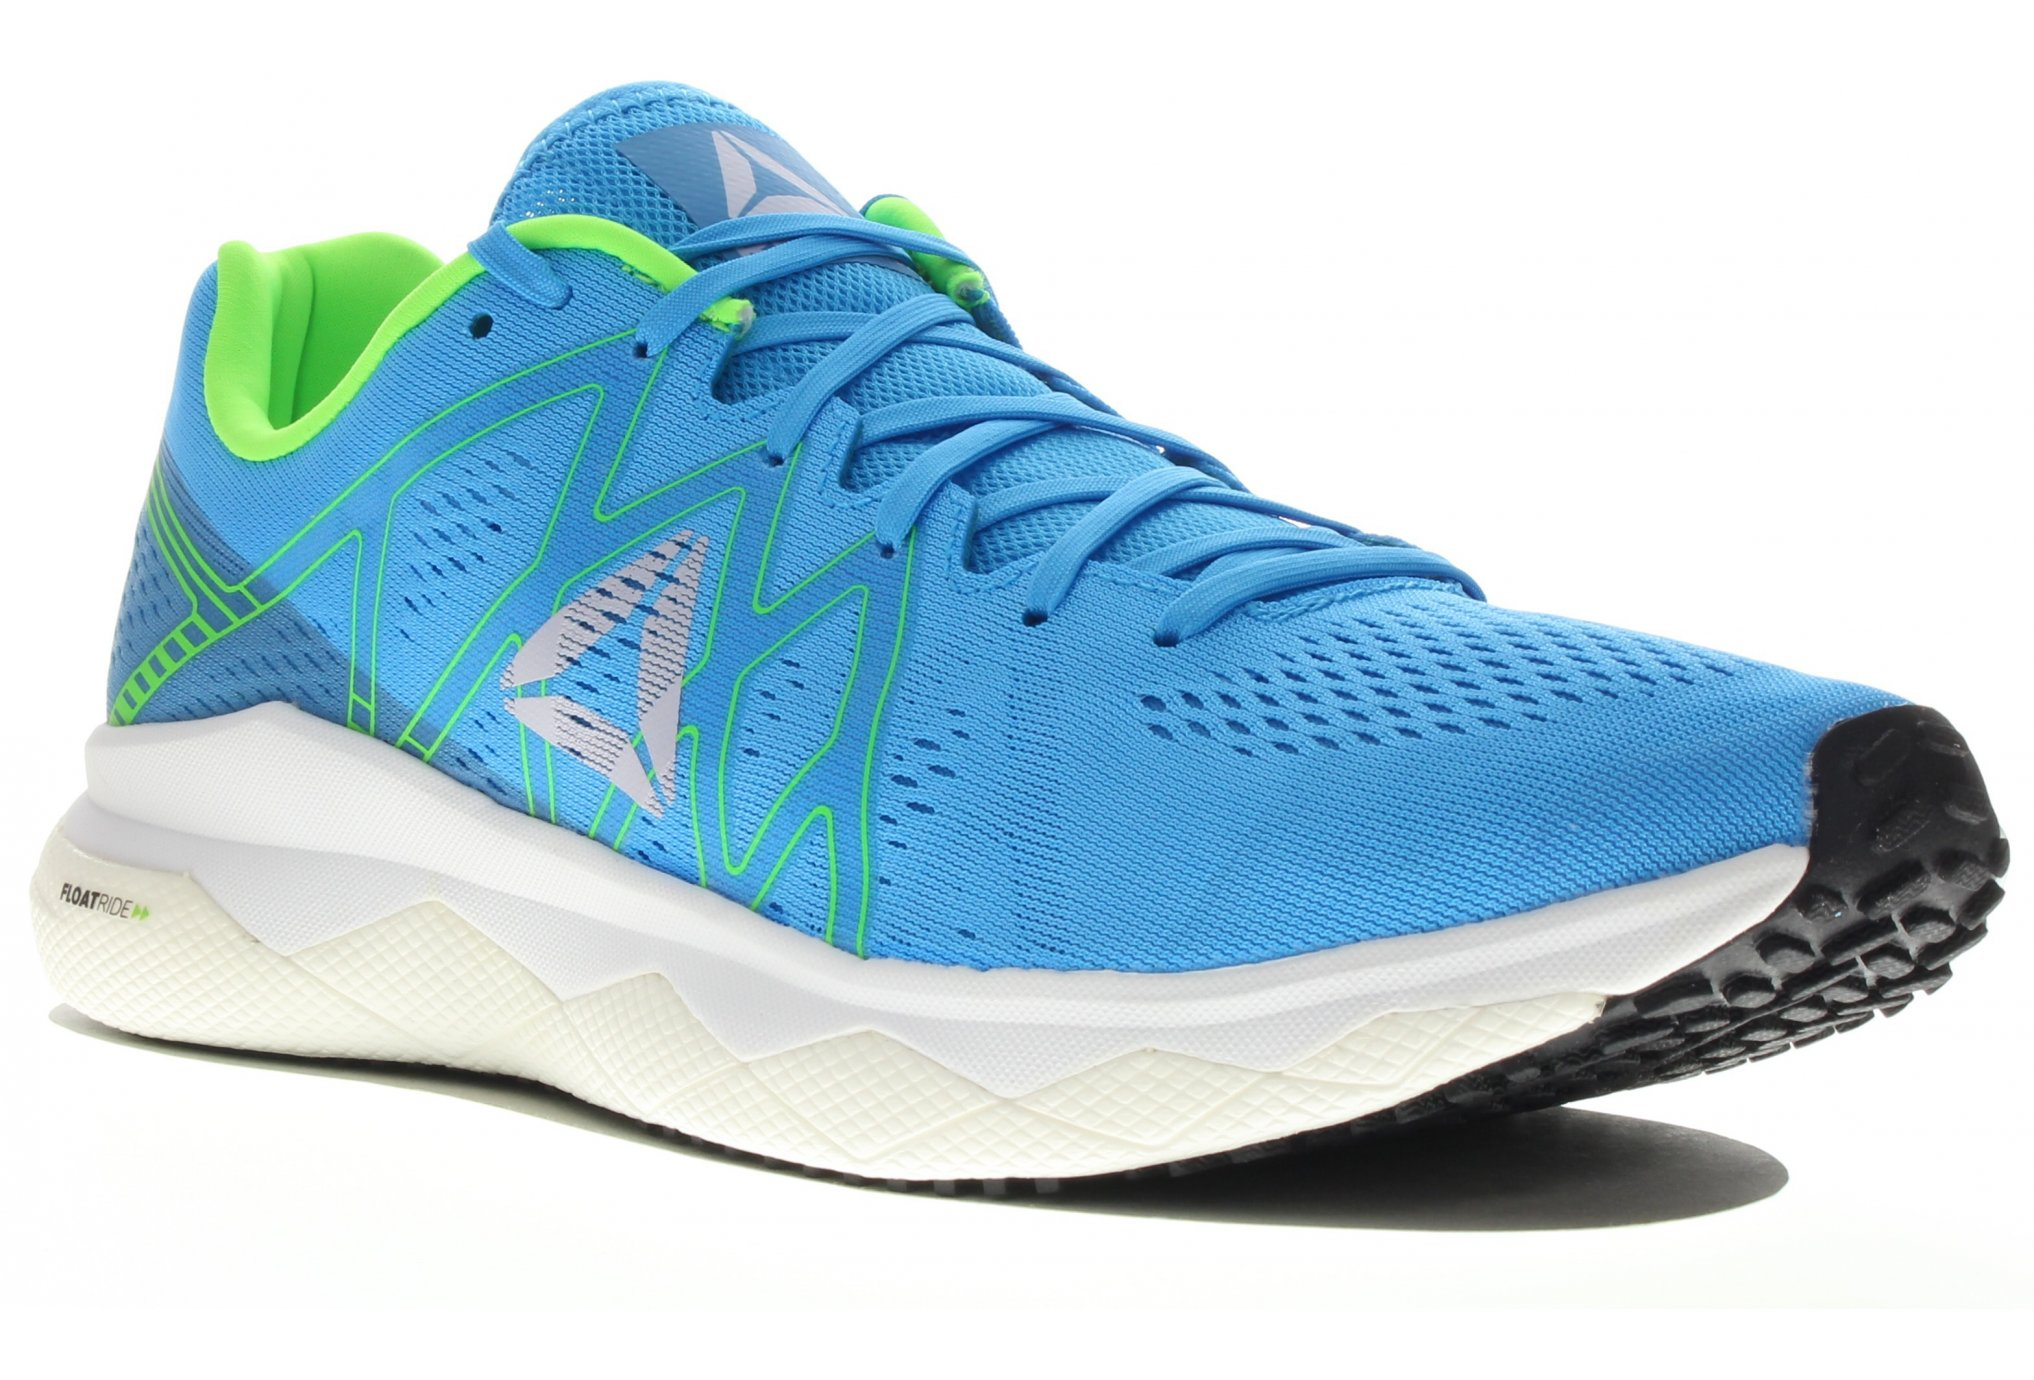 Reebok Floatride Run Fast M Chaussures homme